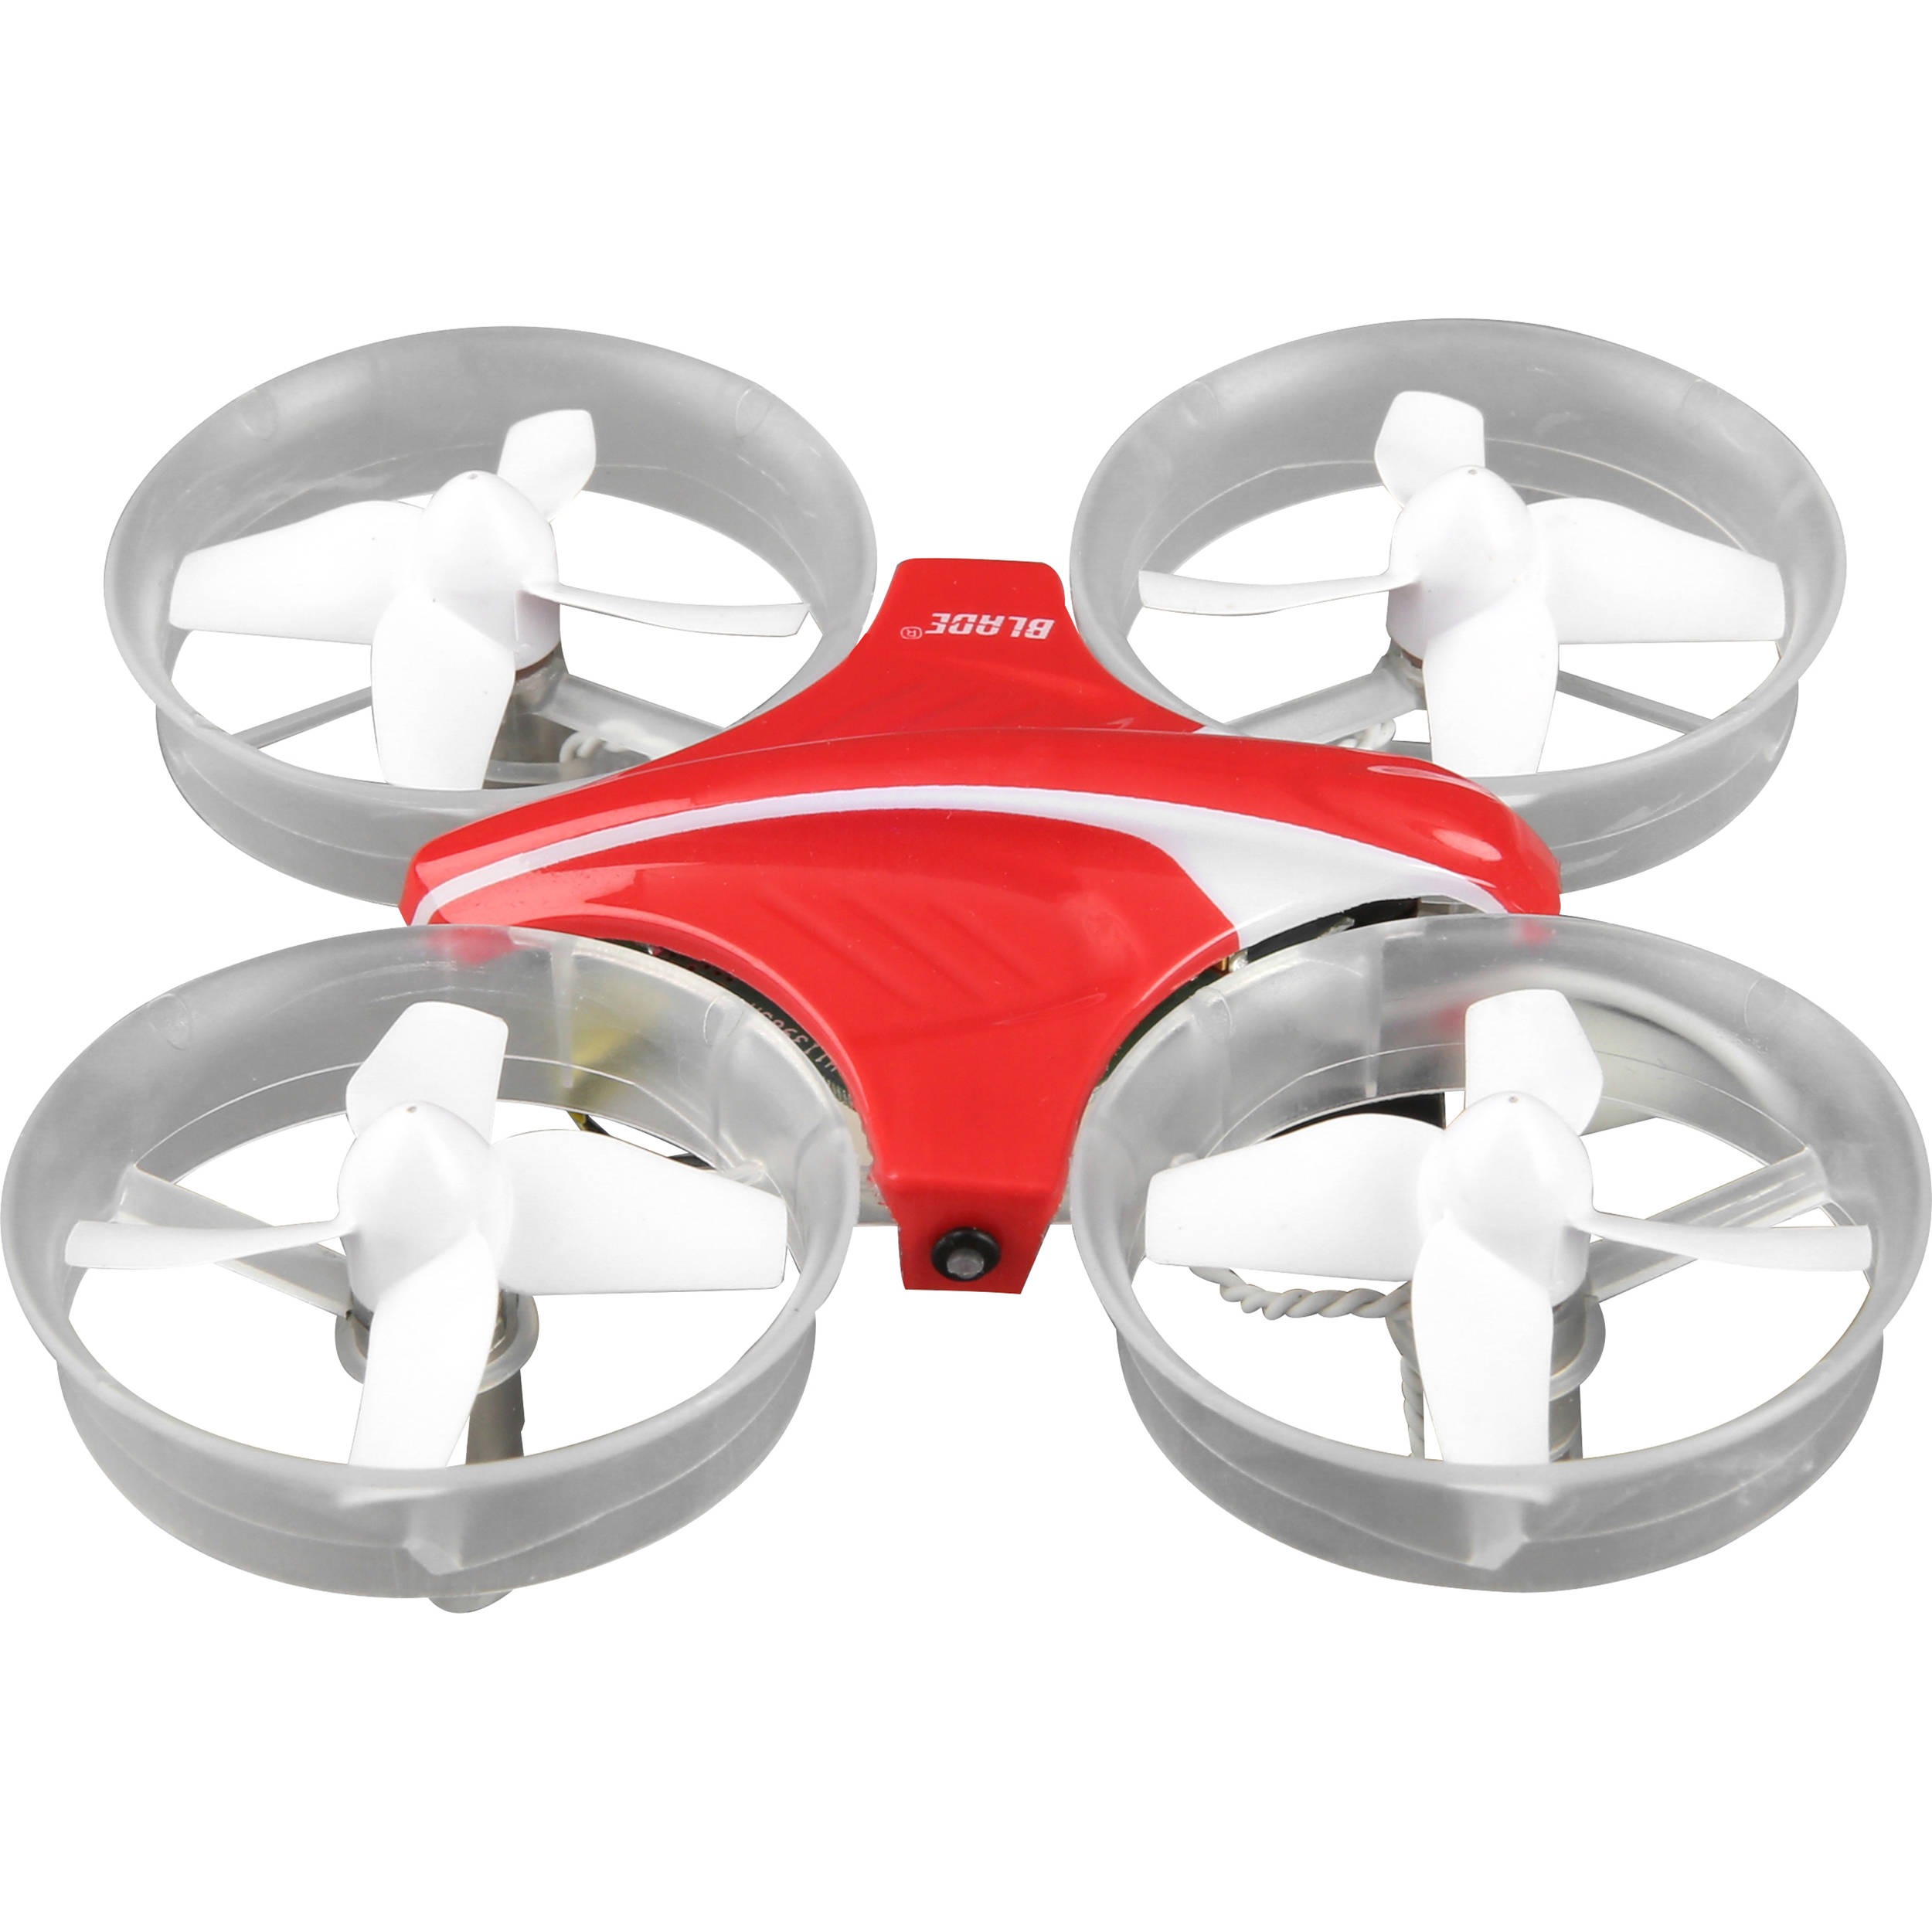 BLADE Inductrix RTF Quadcopter with SAFE Technology